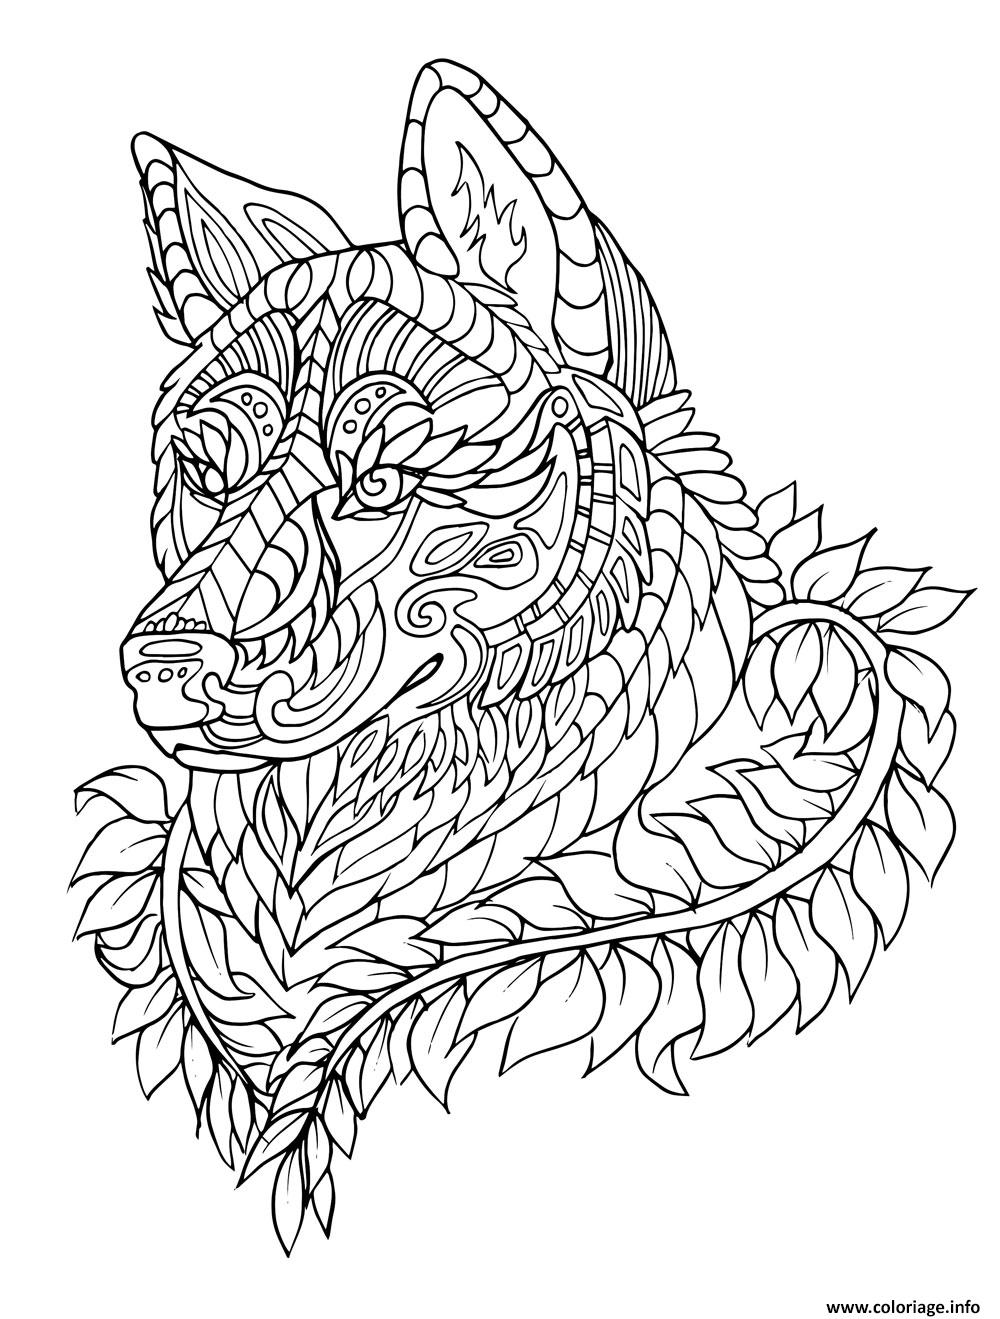 Coloriage loup wolf adulte zentangle - Coloriage de loups ...